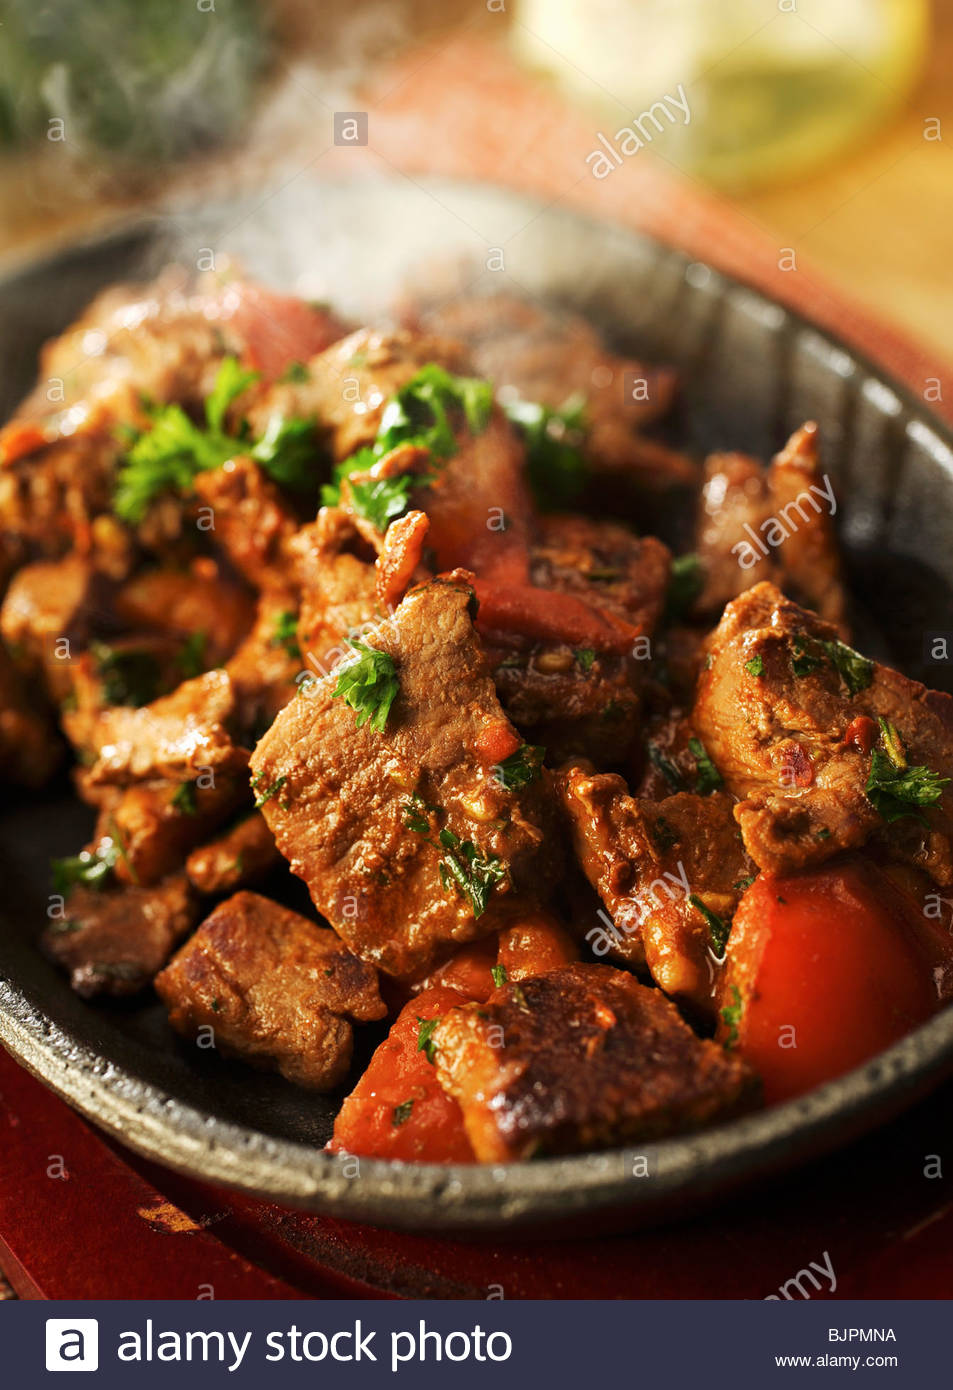 Spicy lamb stew with tomatoes - Stock Image